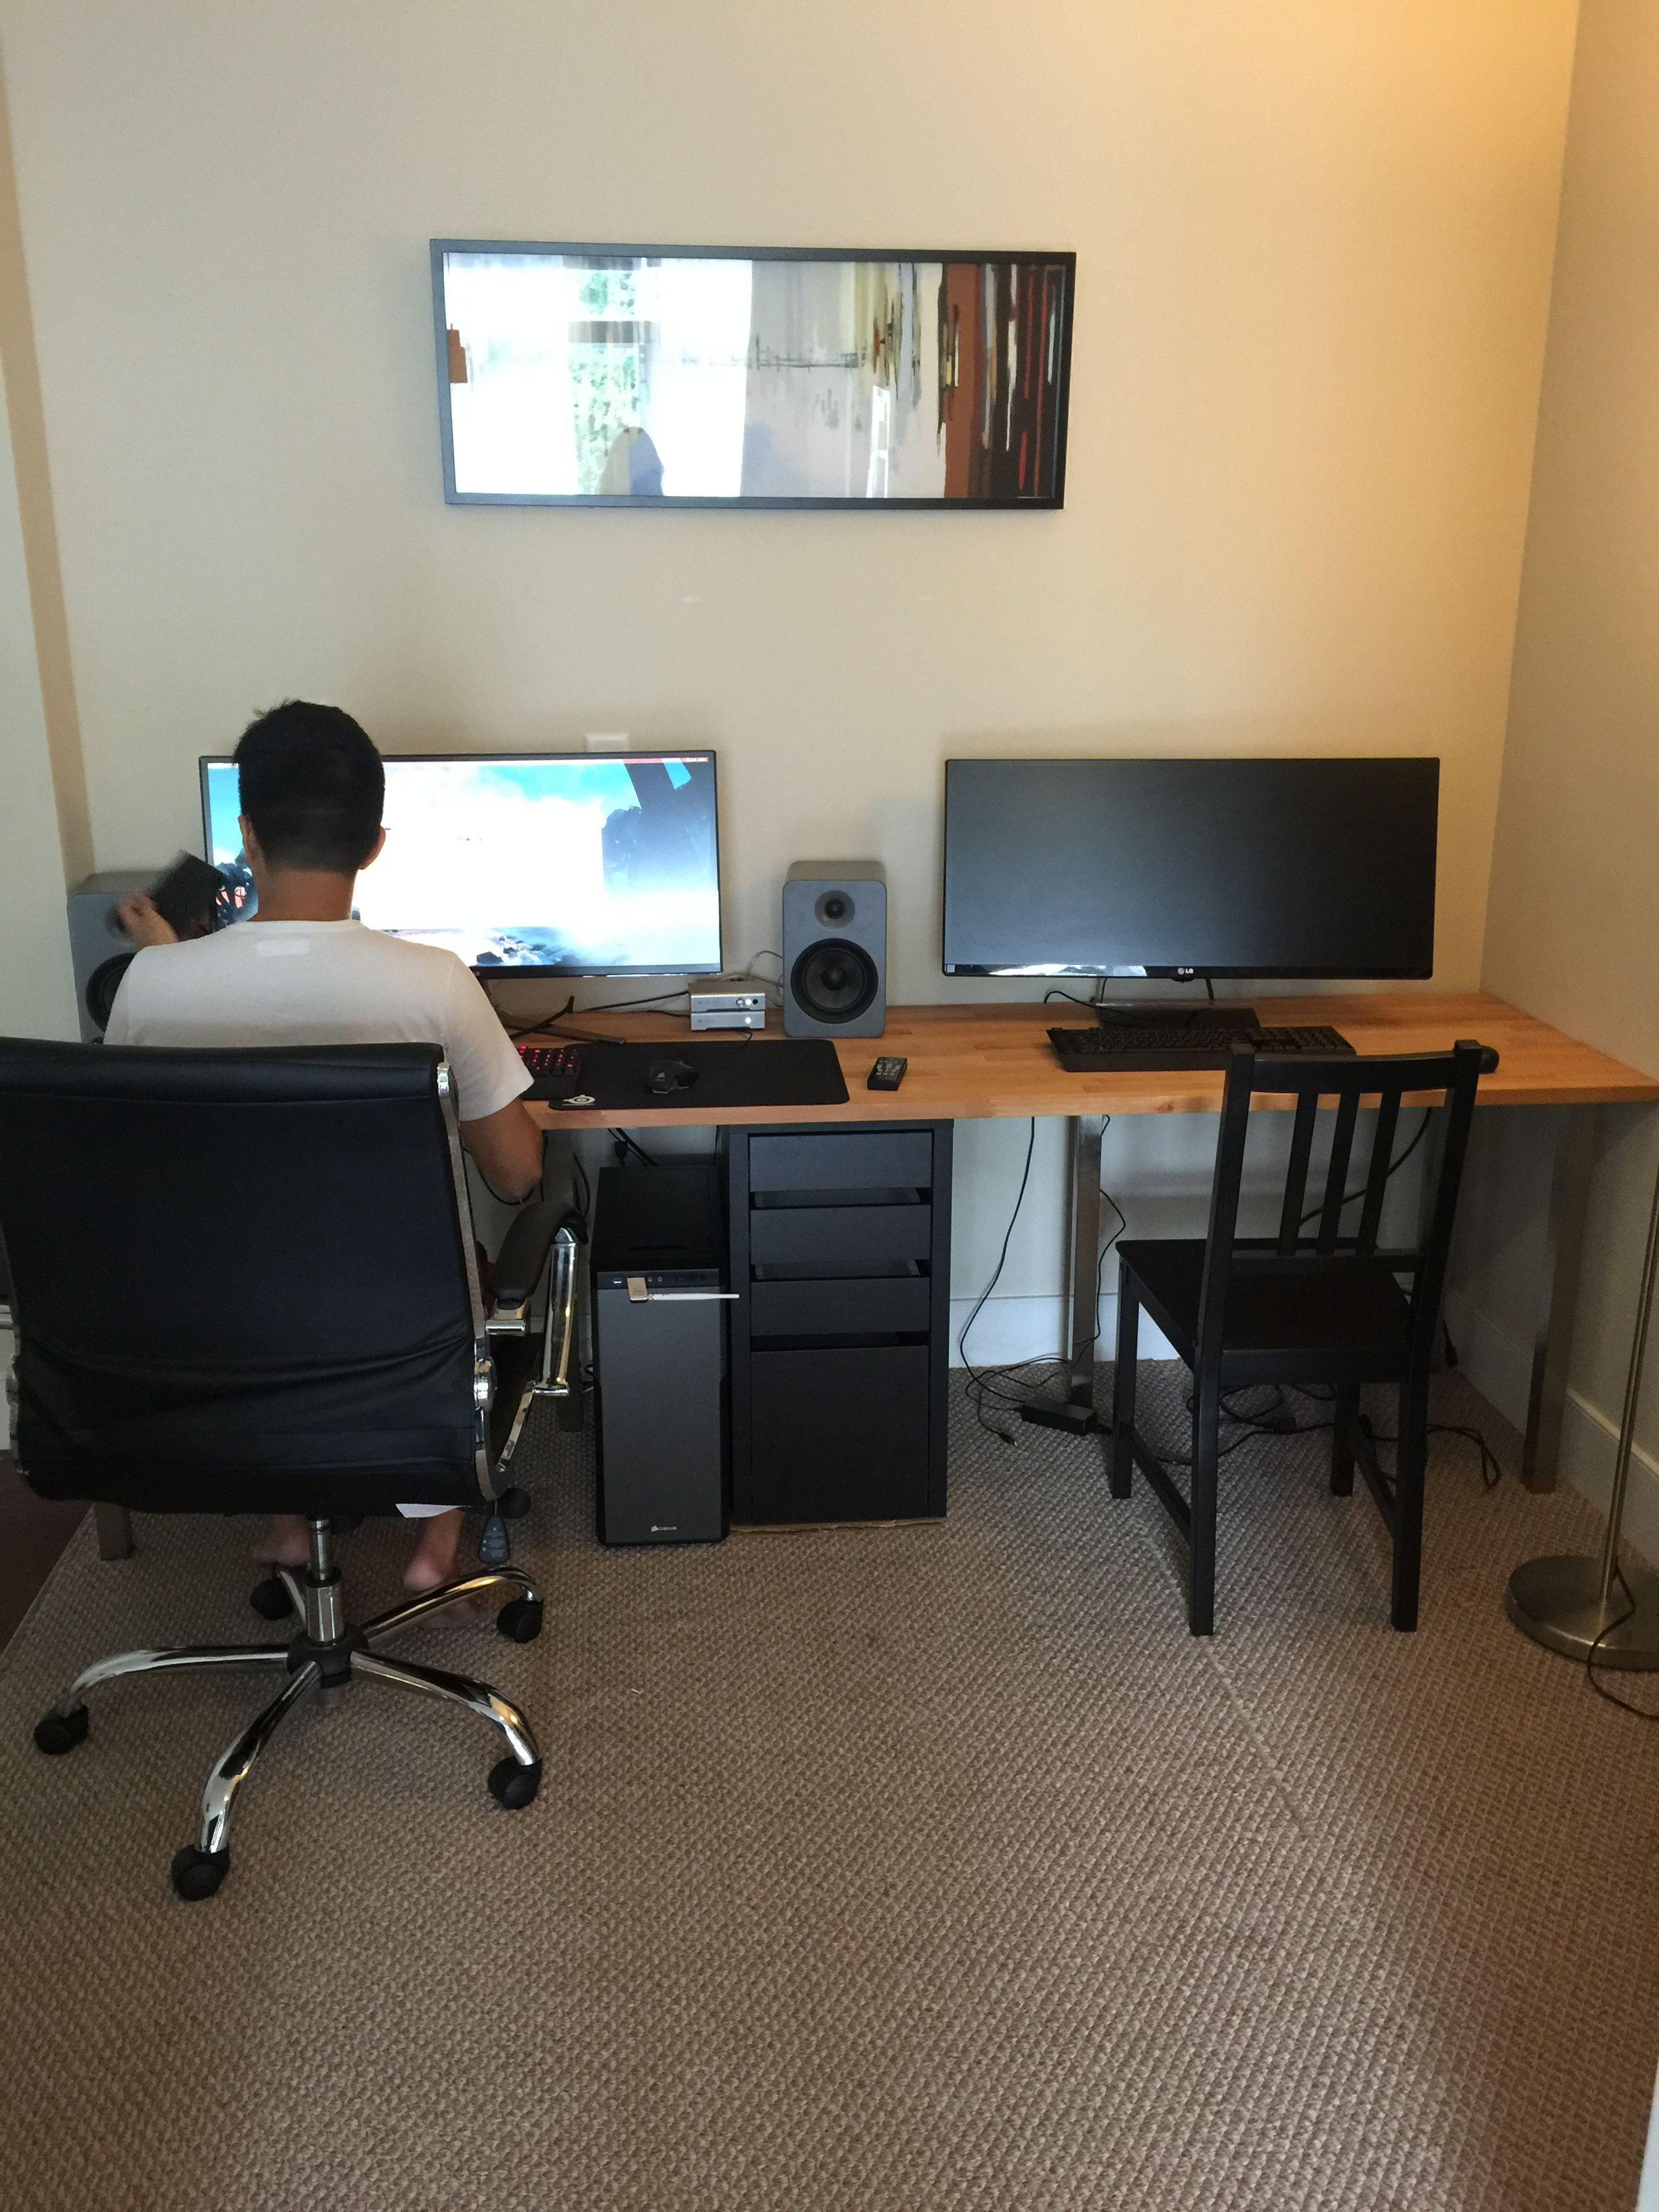 Two Person Desk Design Ideas For Your Home Office Desk For Two